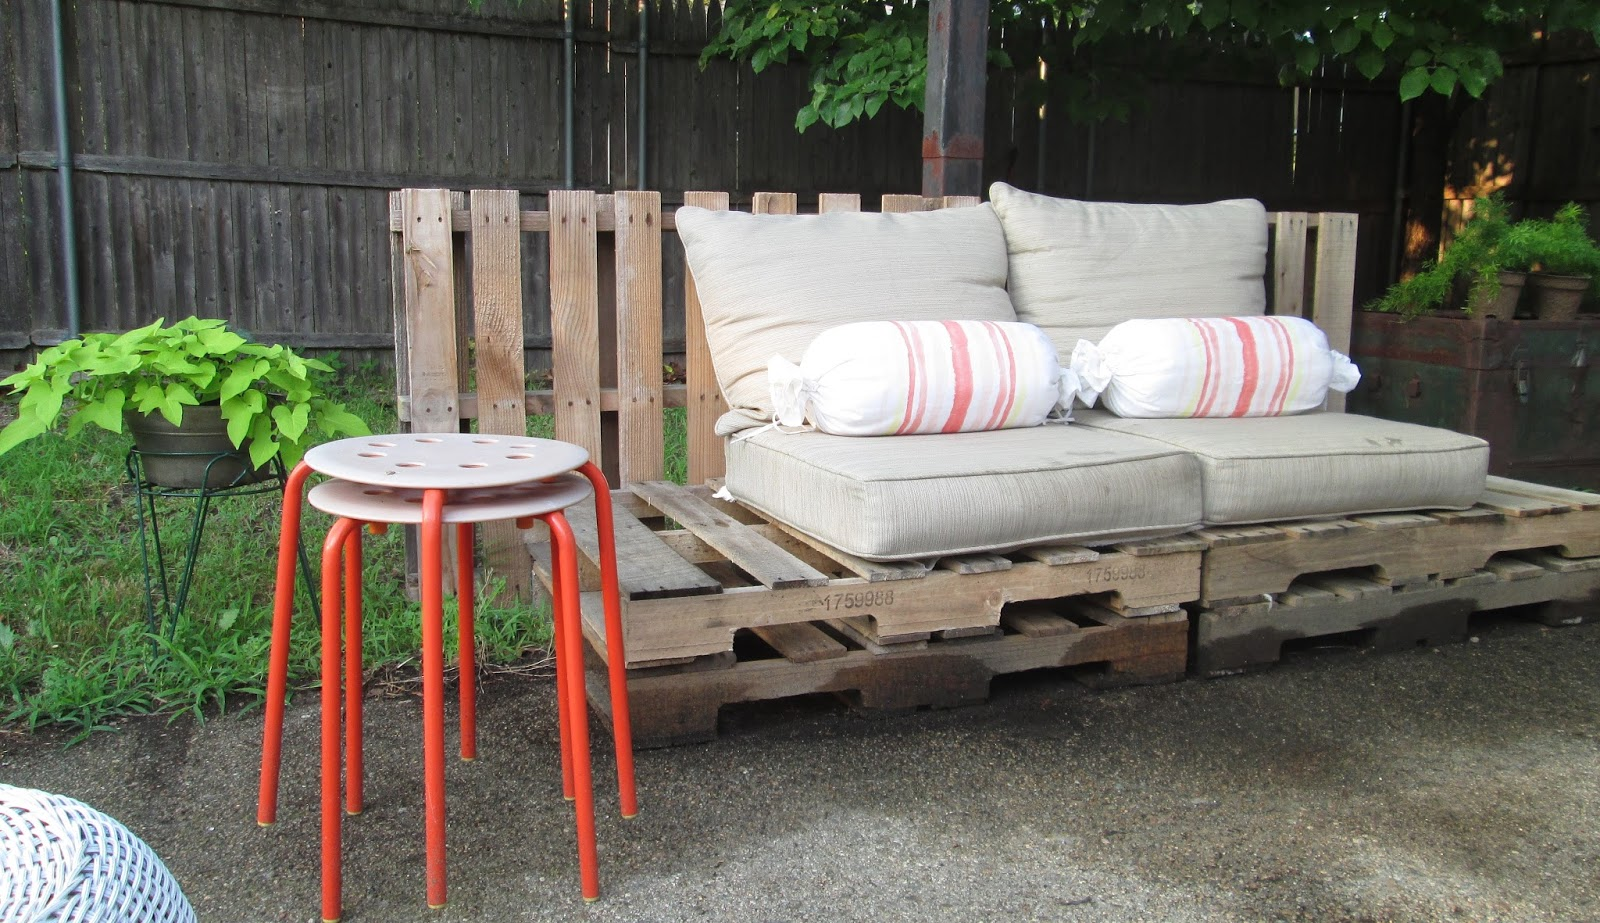 amber wilhelmina outdoor spaces diy pallet lounge seating